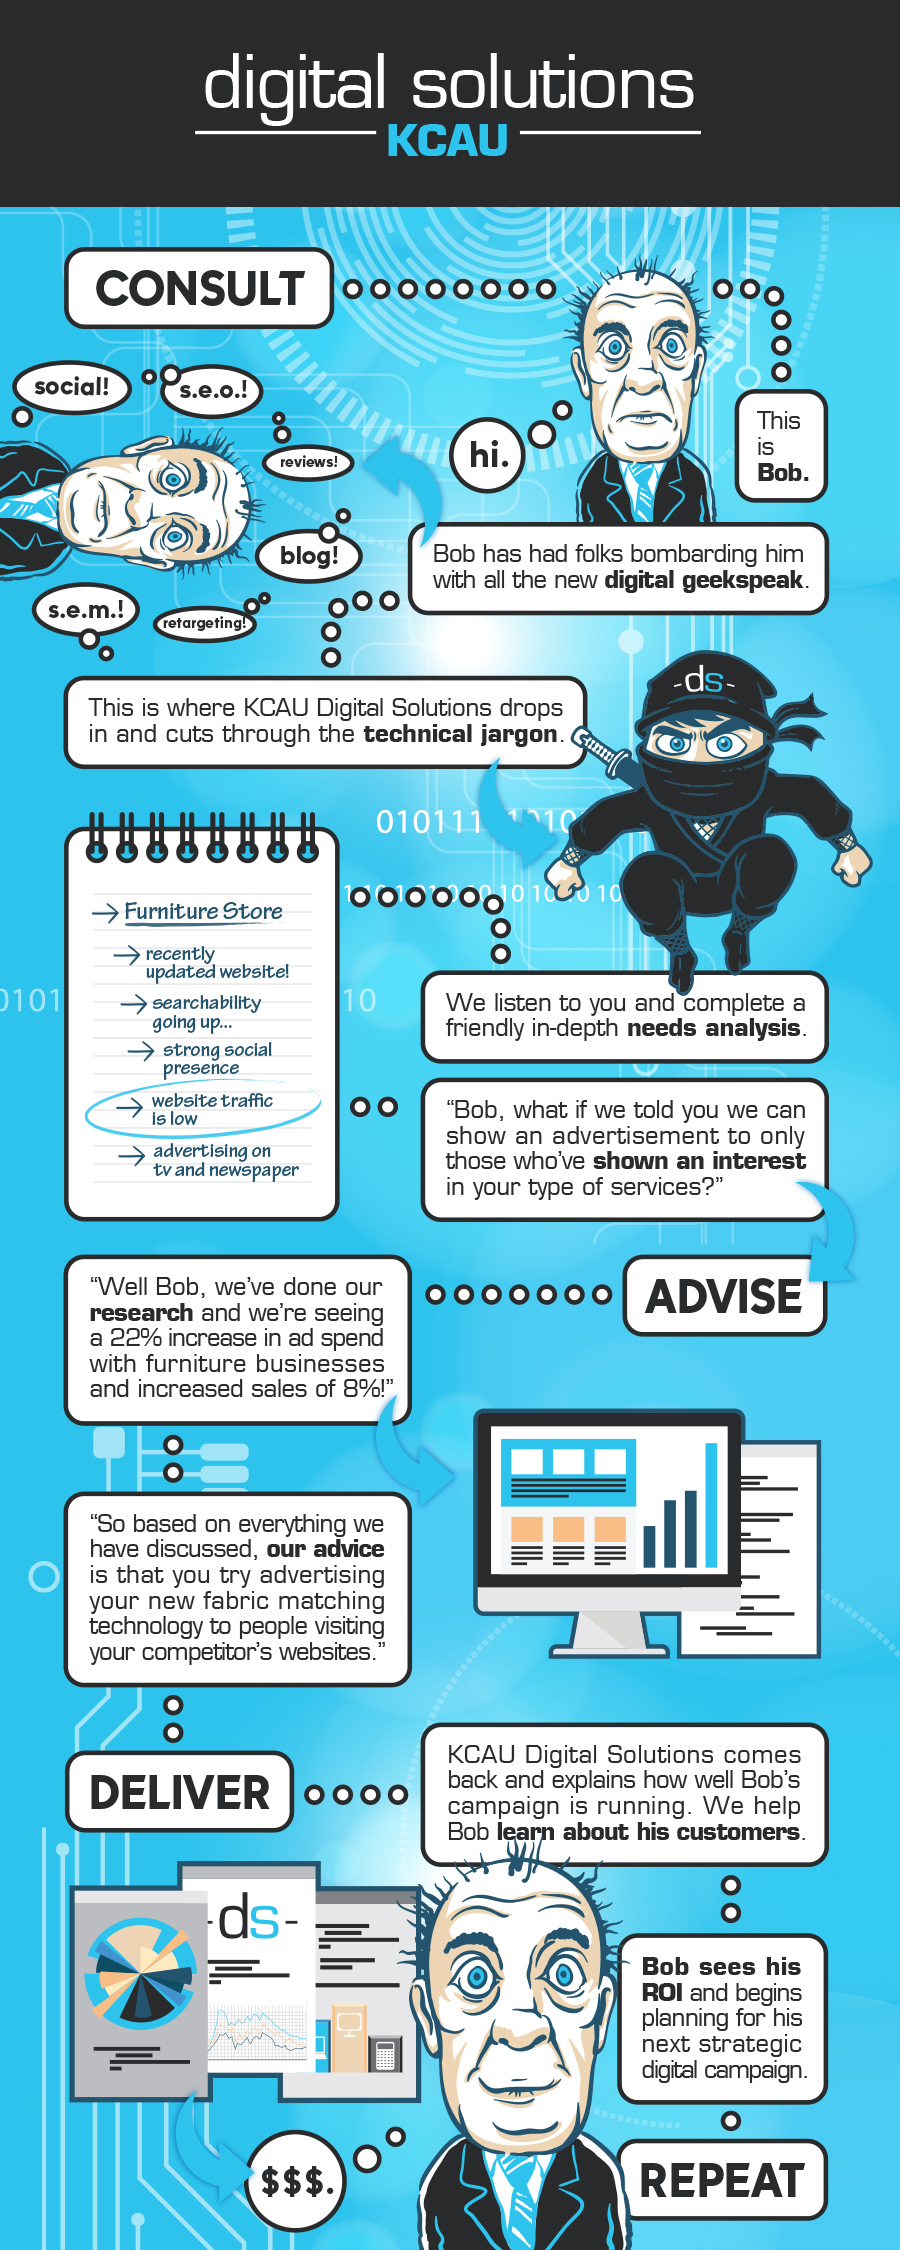 KCAU Digital Solutions, Sioux City, Iowa, Bob Infographic large, Targeted Advertising